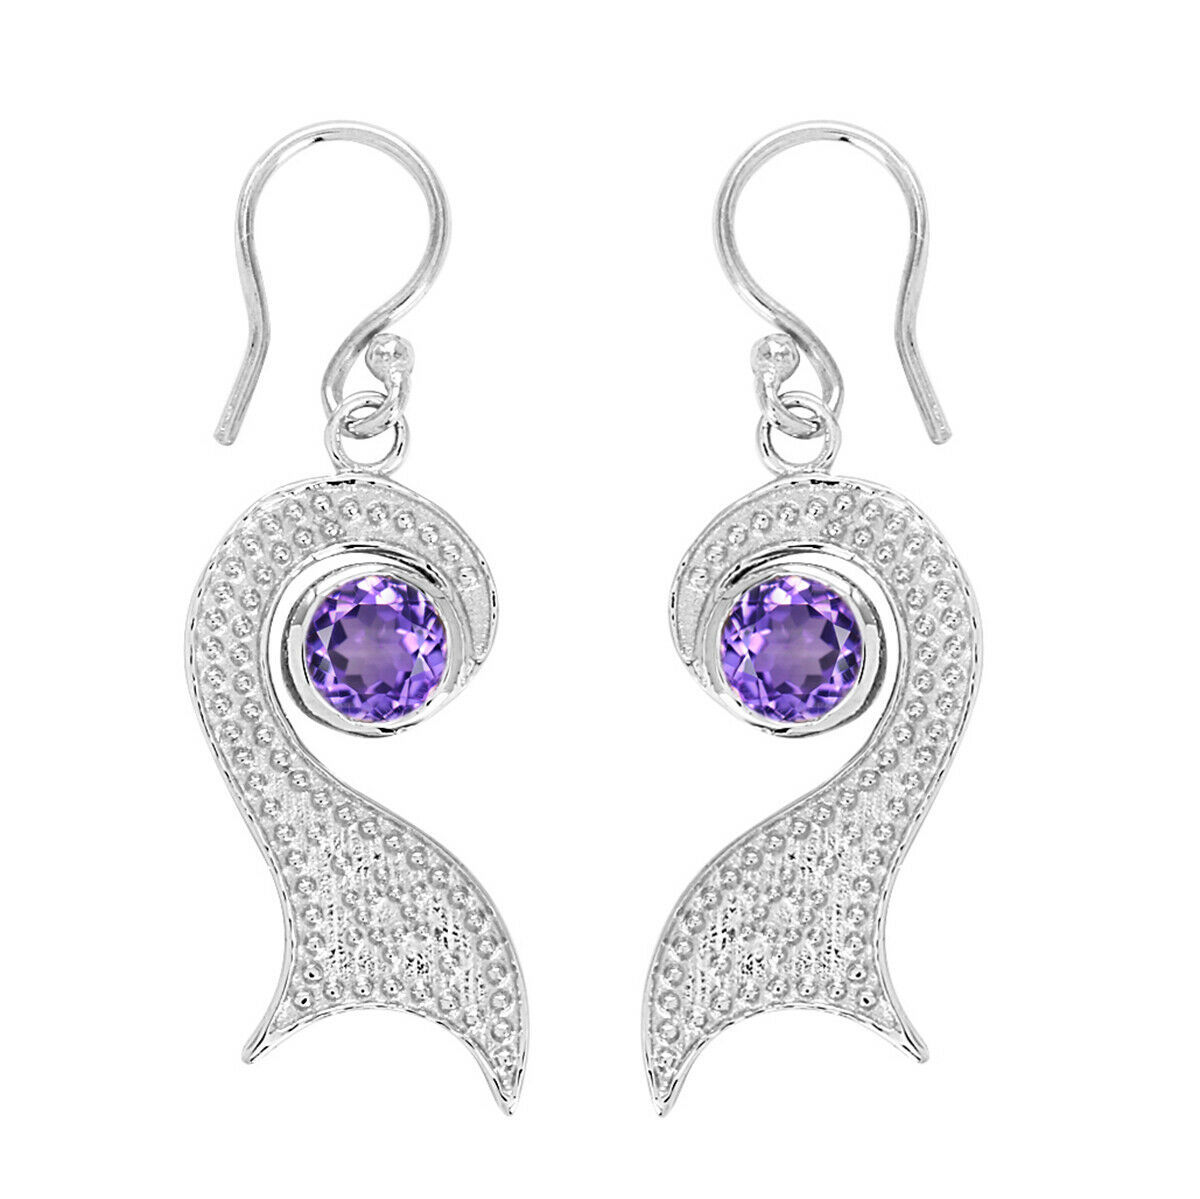 Unique Design Handmade Fashion Peacock Jewel Natural Amethyst 925 Silver Earring